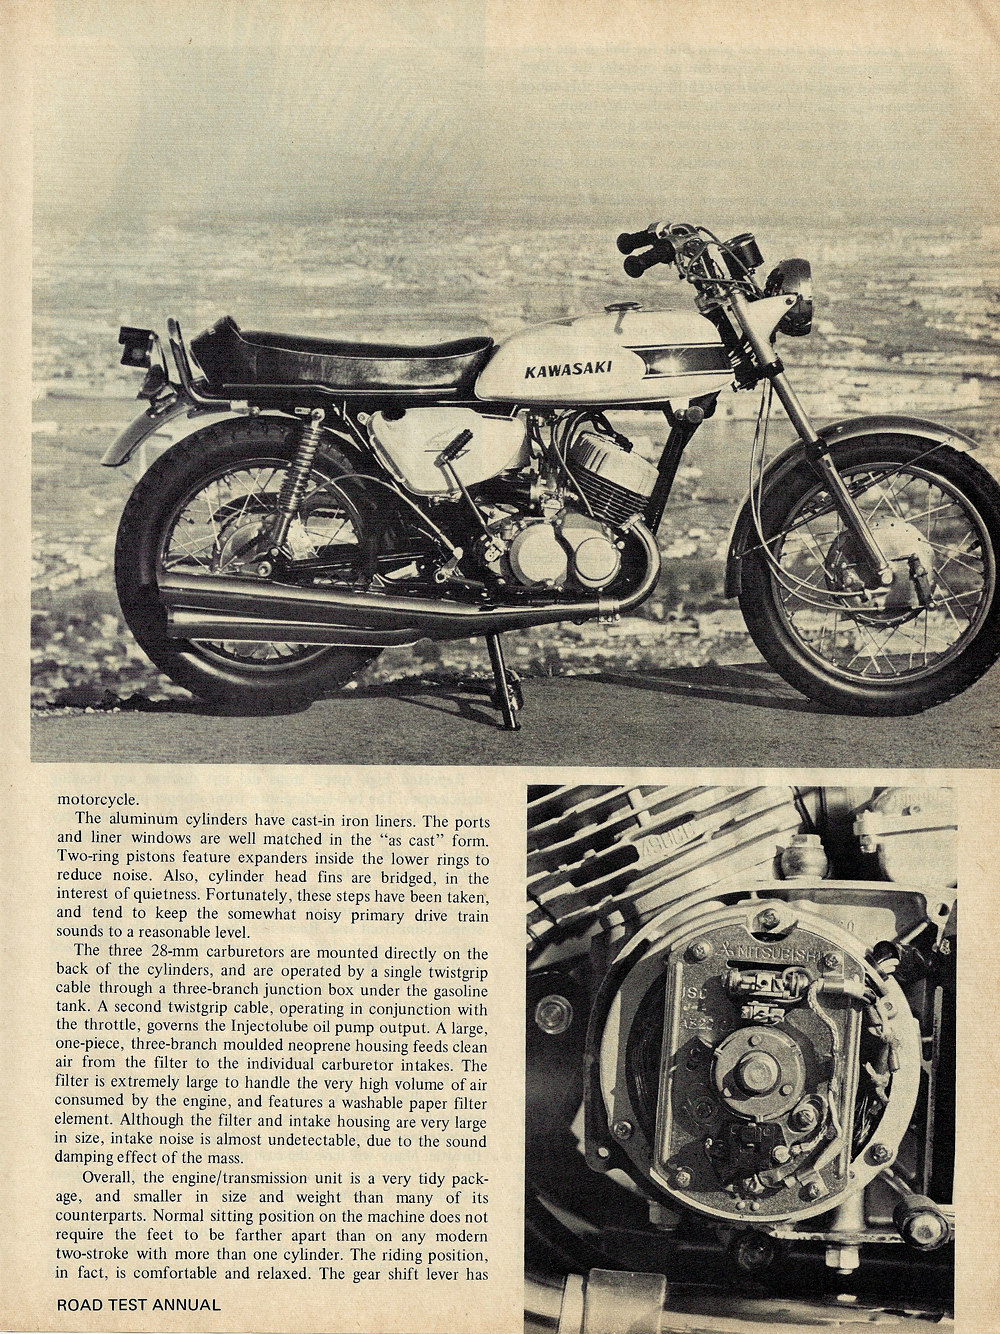 1969 Kawasaki 500 Mach 3 road test 5.jpg